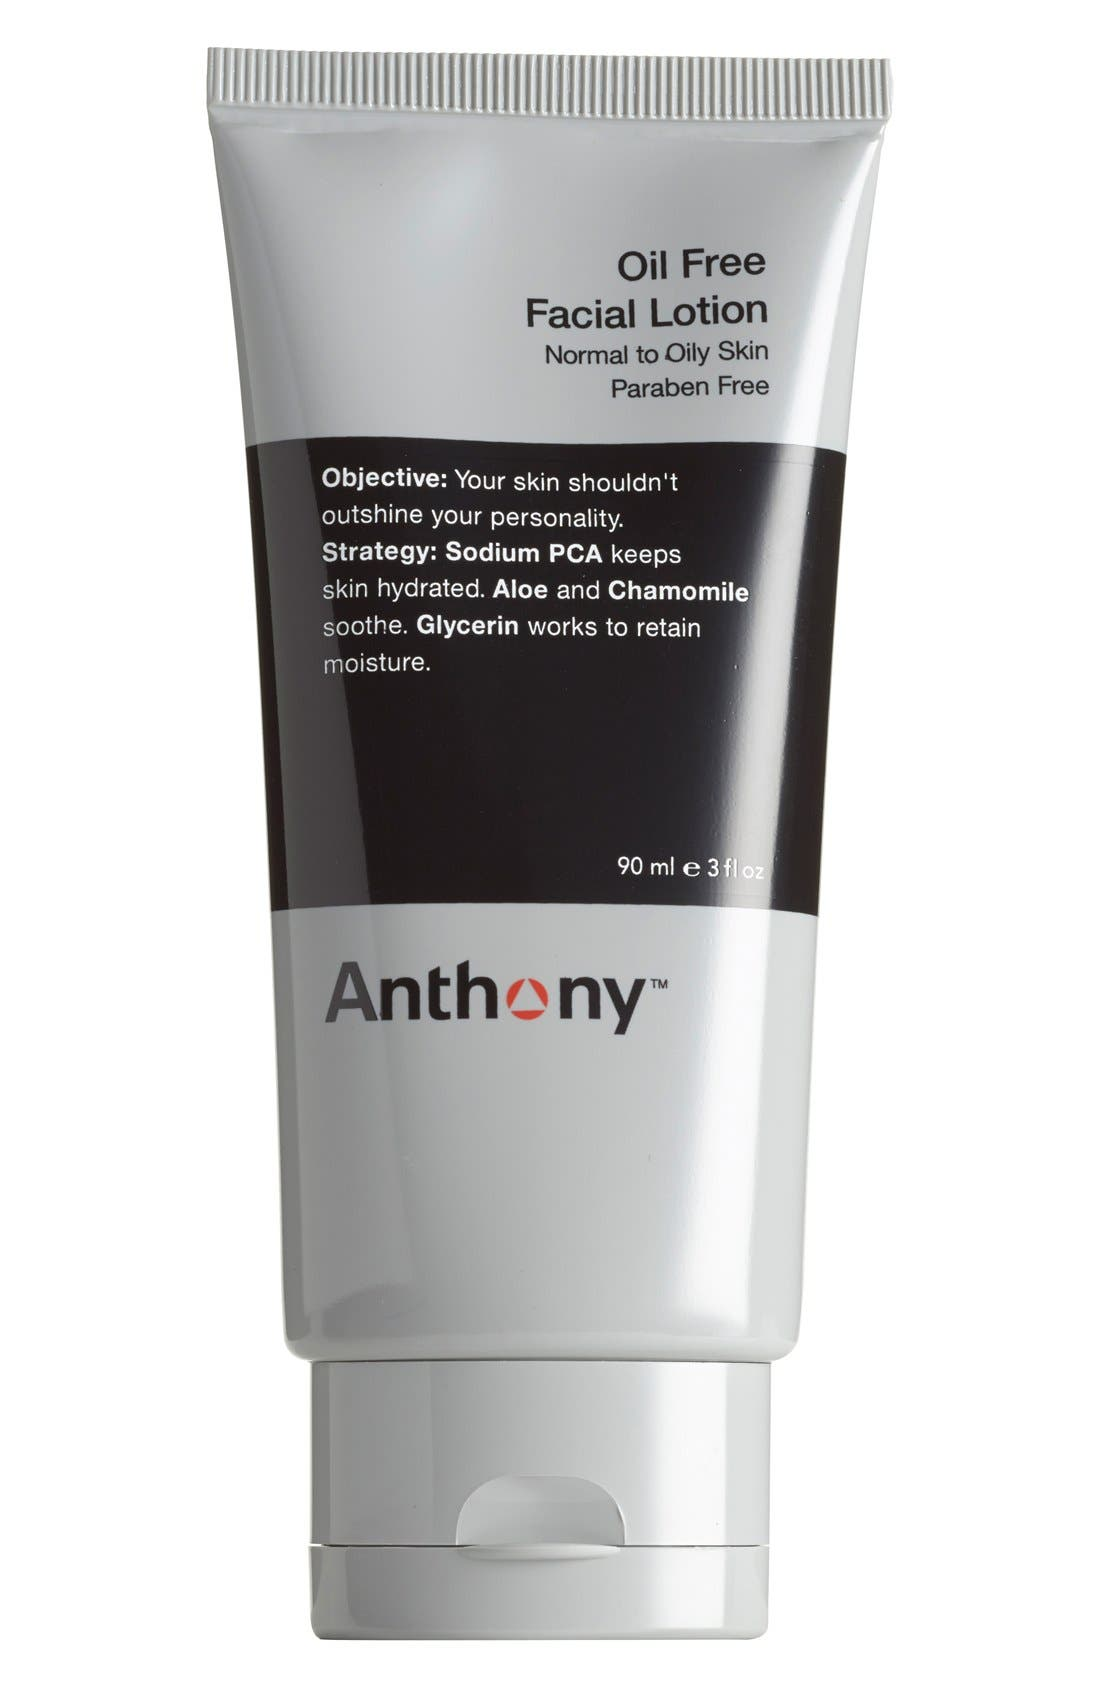 Anthony™ Oil Free Facial Lotion